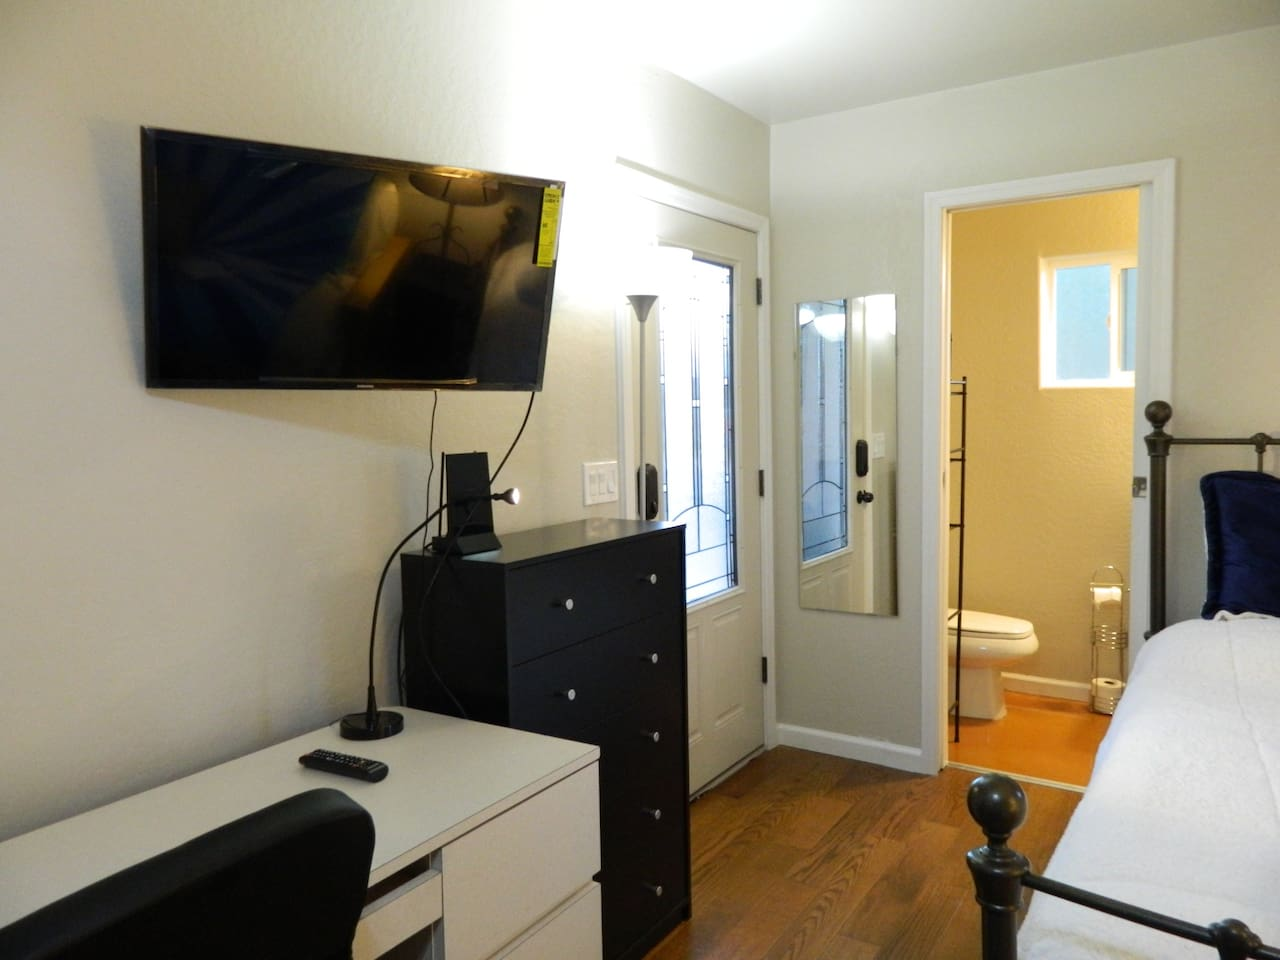 Your private entryway into your private bedroom with your own private bathroom.